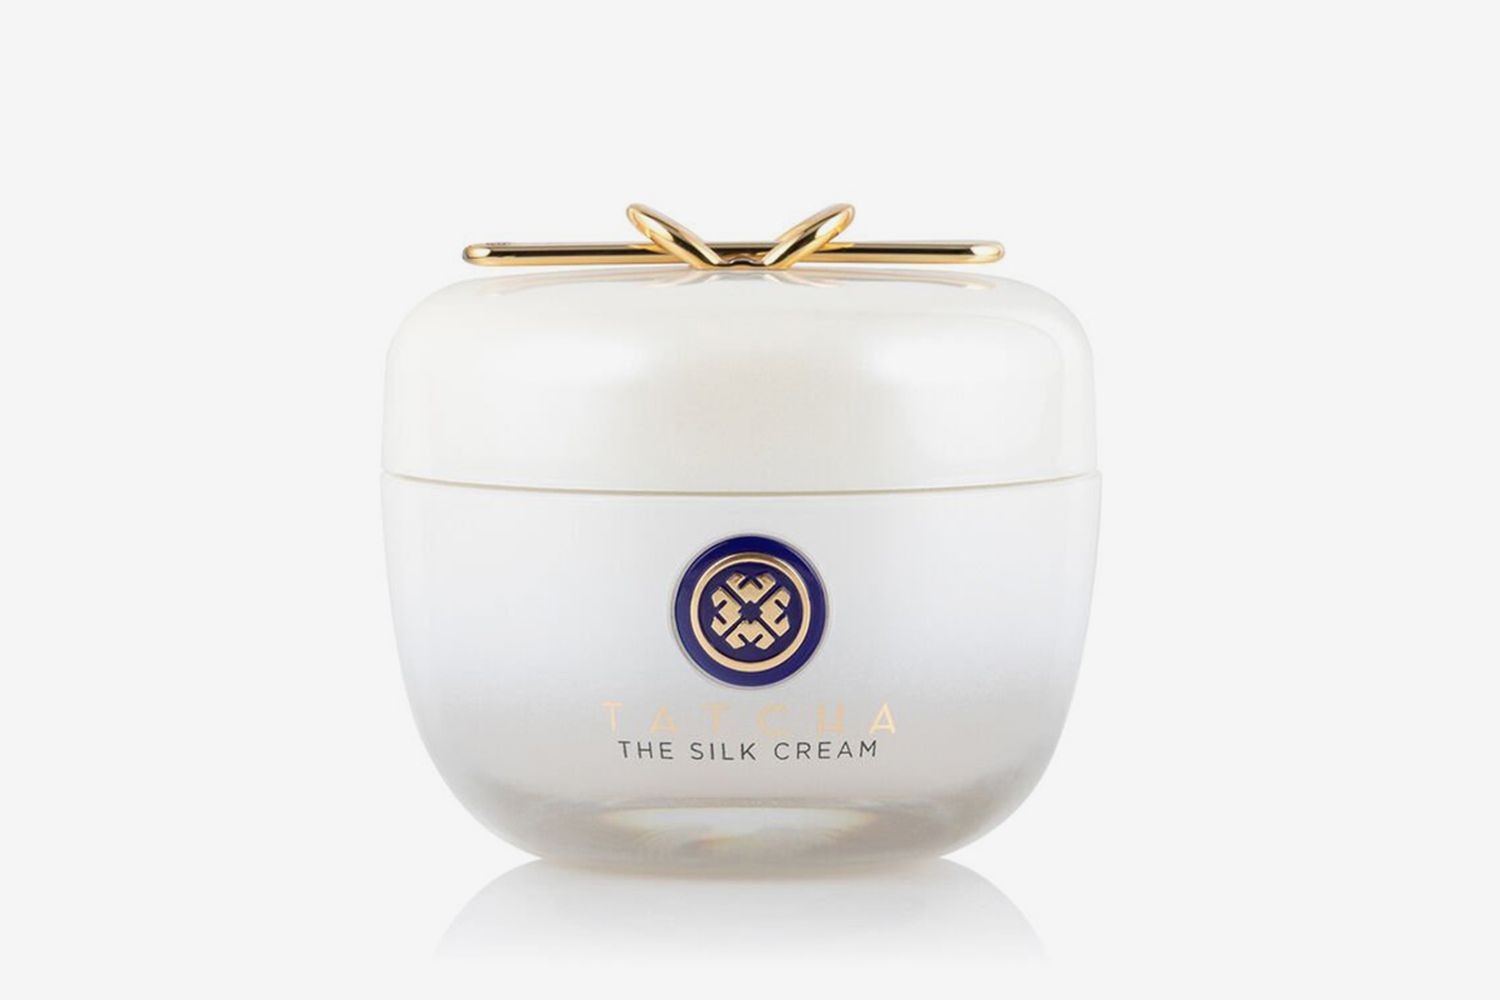 The Silk Cream